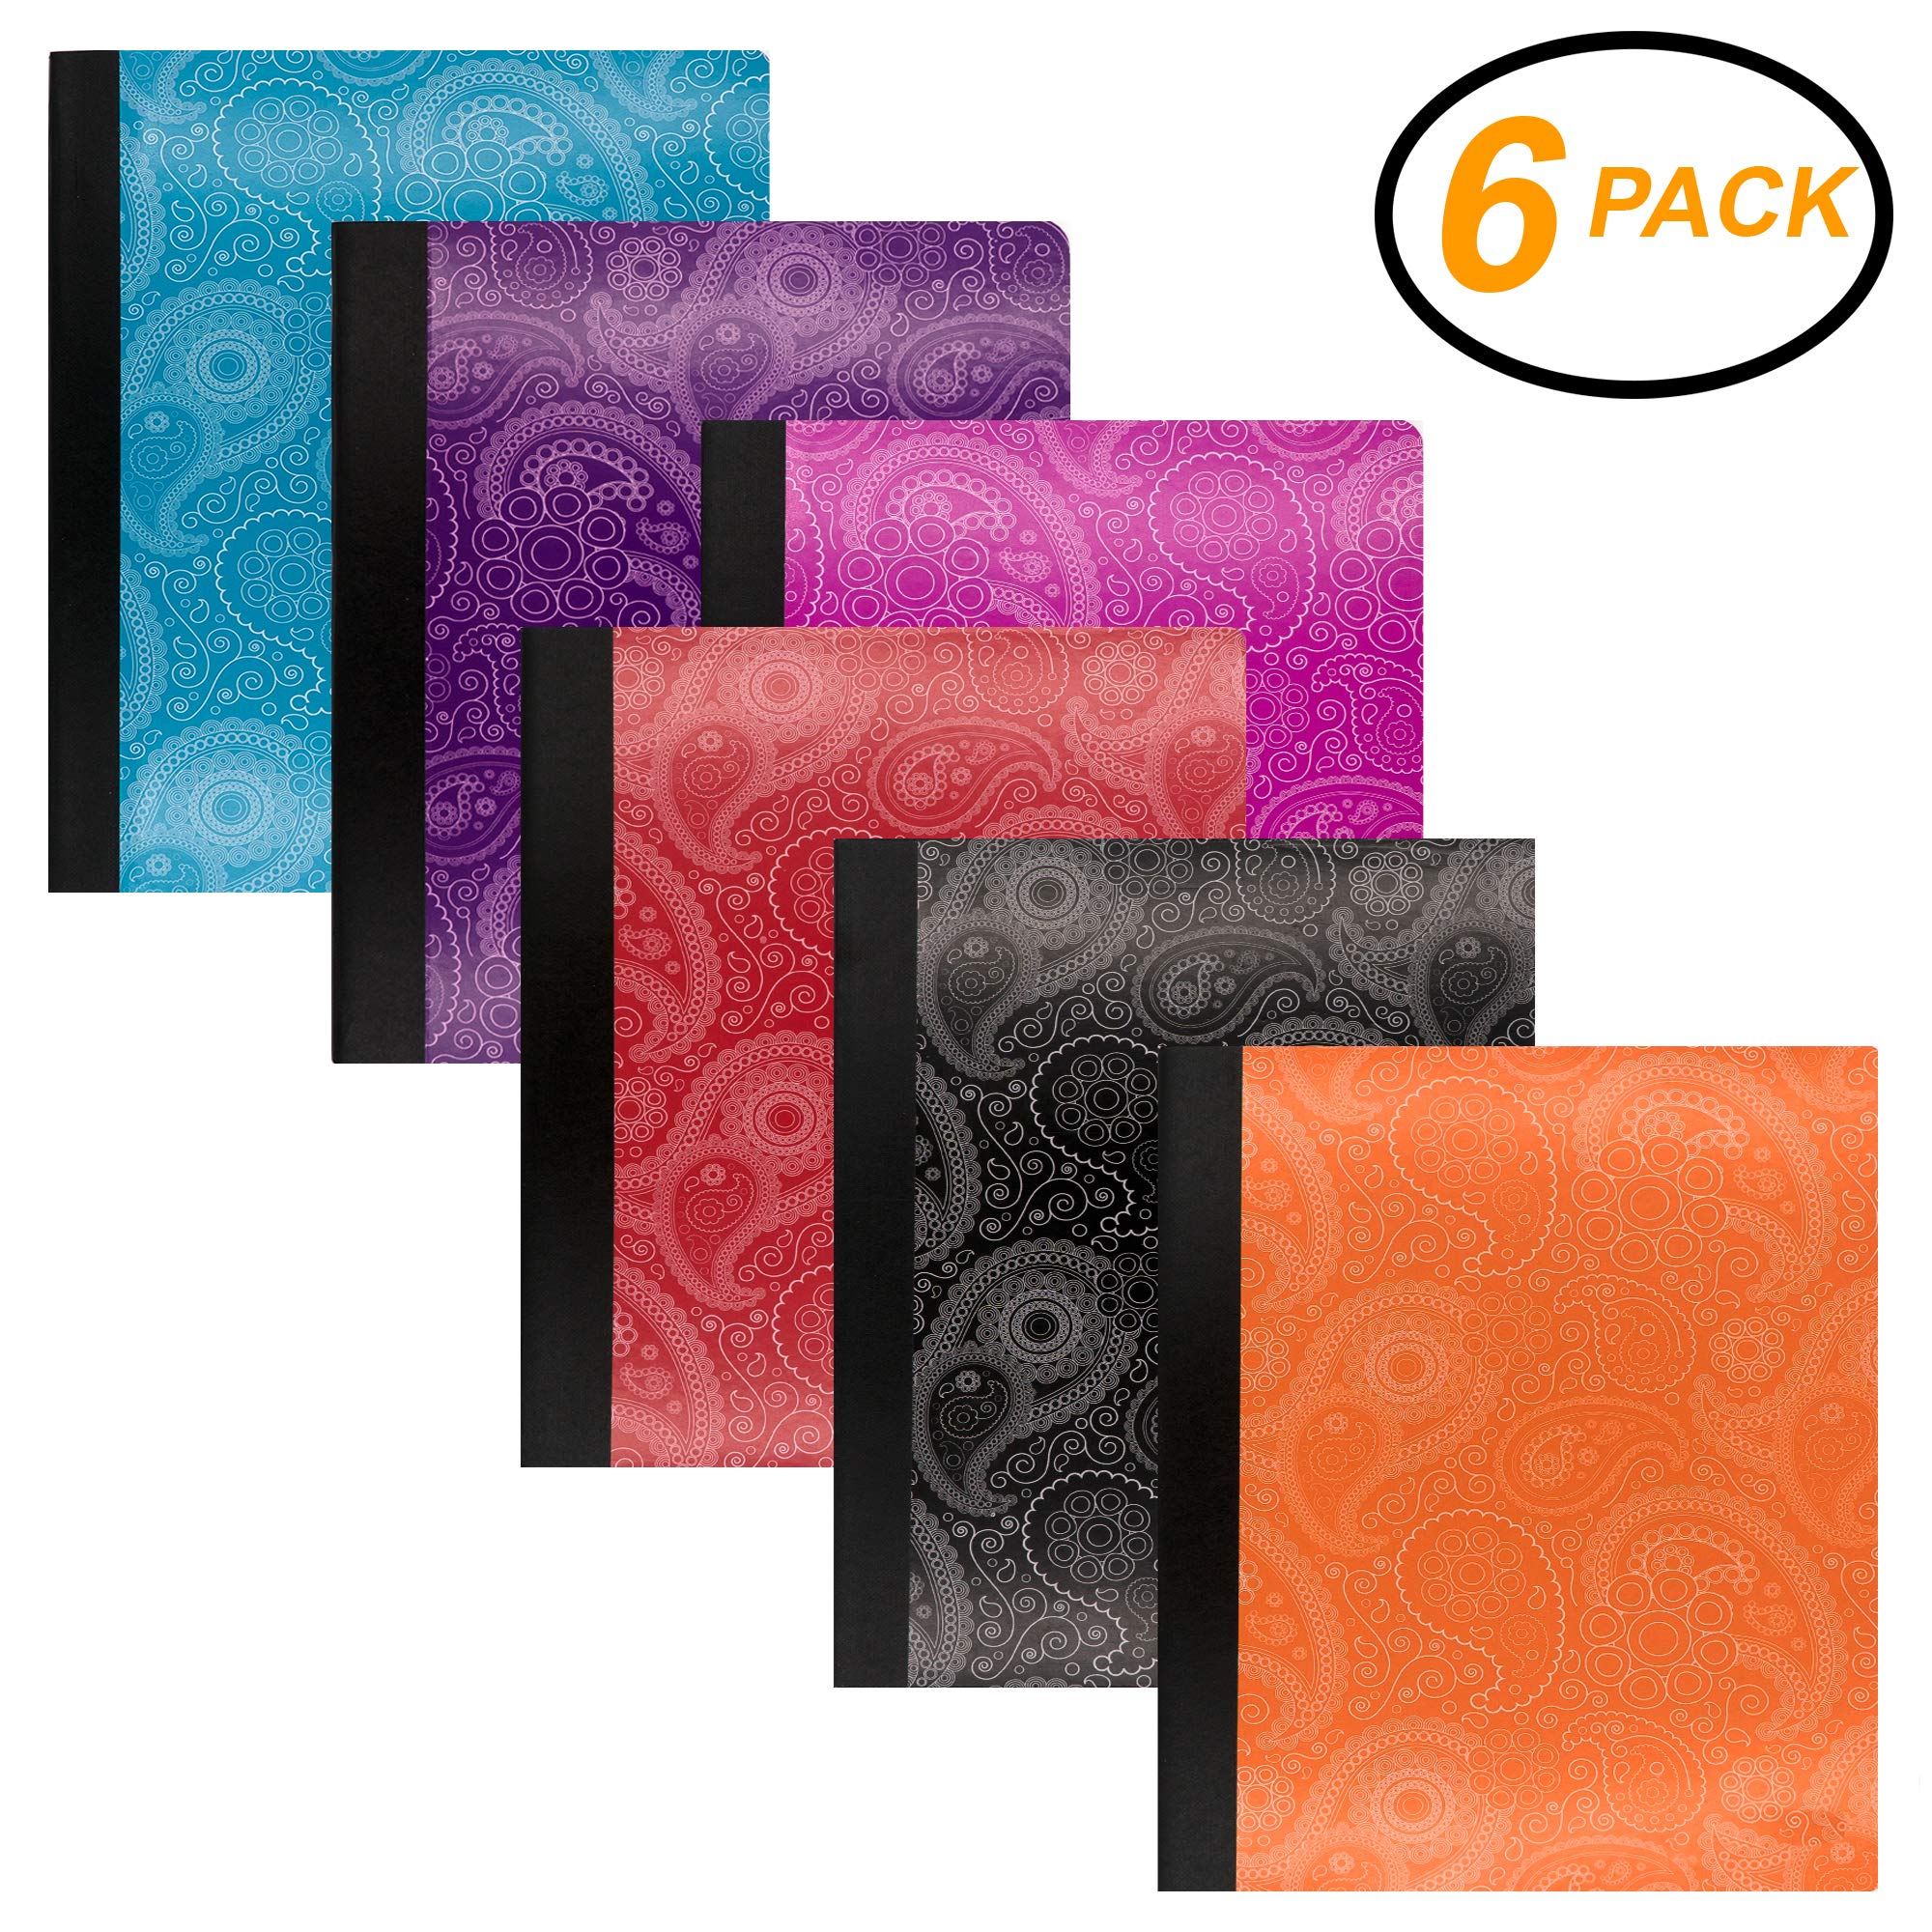 Emraw Paisley Composition Book College Ruled Paper Office Dairy Note Books 100 Sheet Journals Meeting Notebook Hard Covers Pack Of 6 Writing Book For school